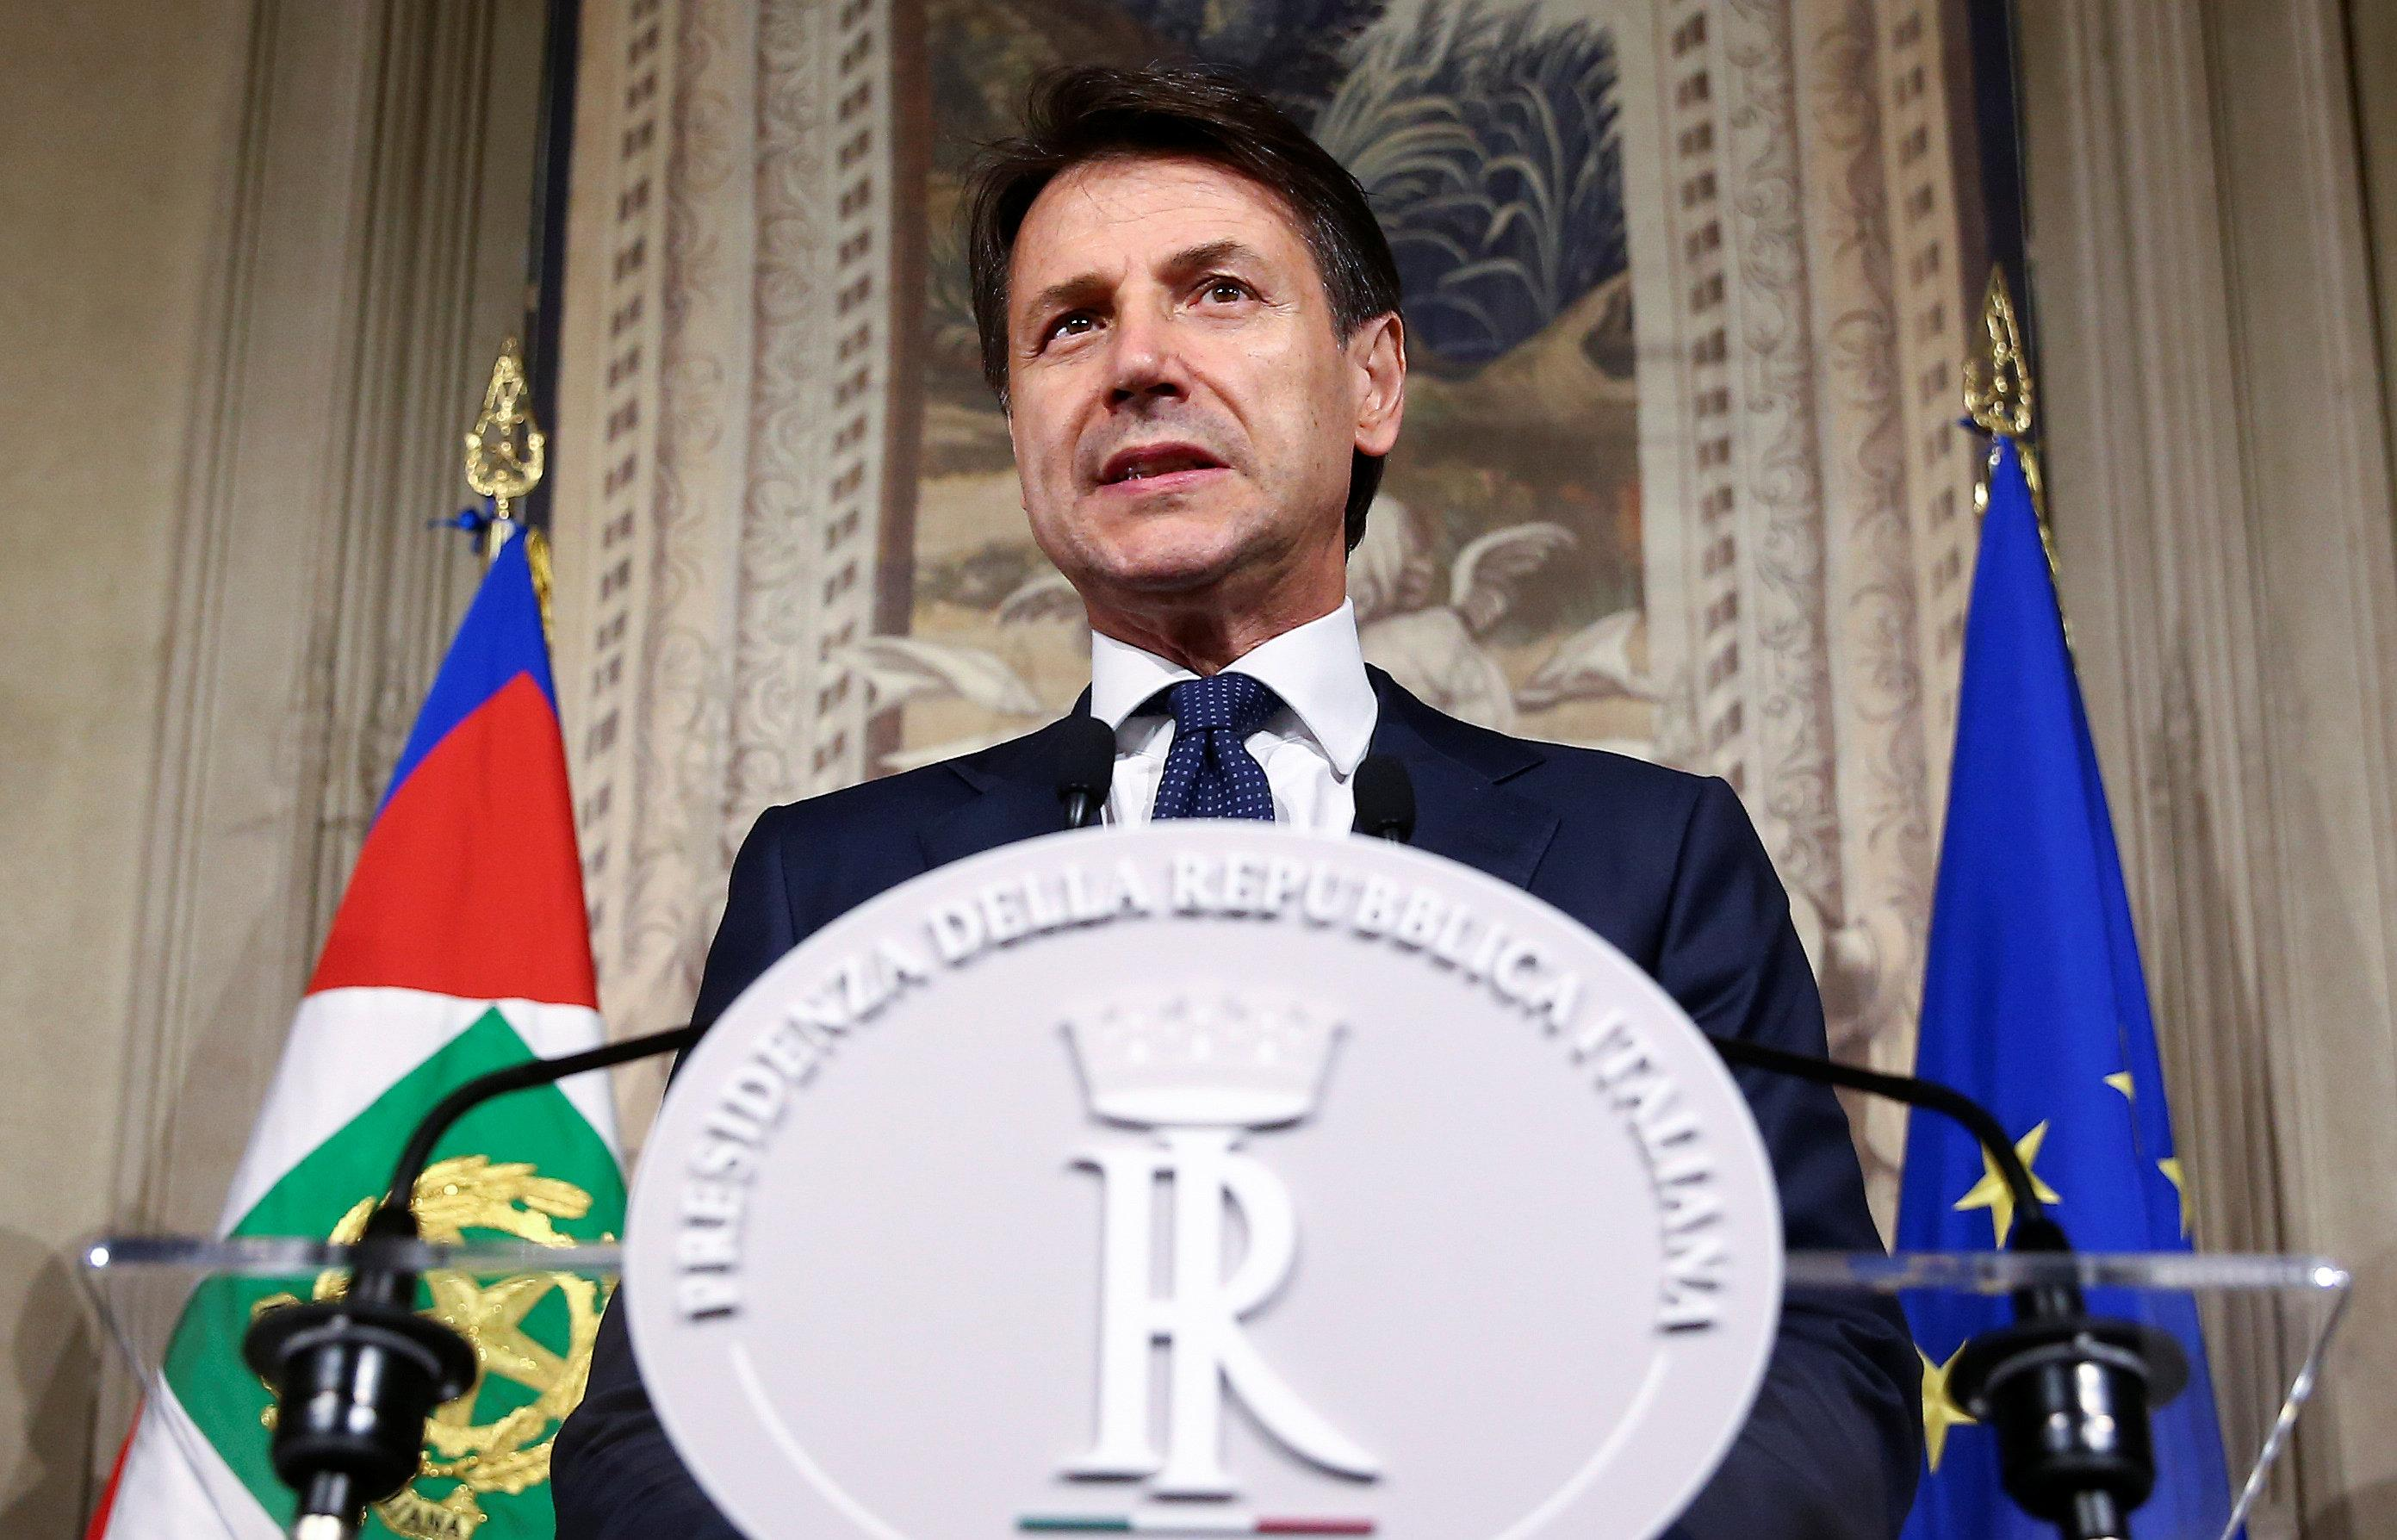 Italy awaits decision on last-ditch deal to avoid snap elections